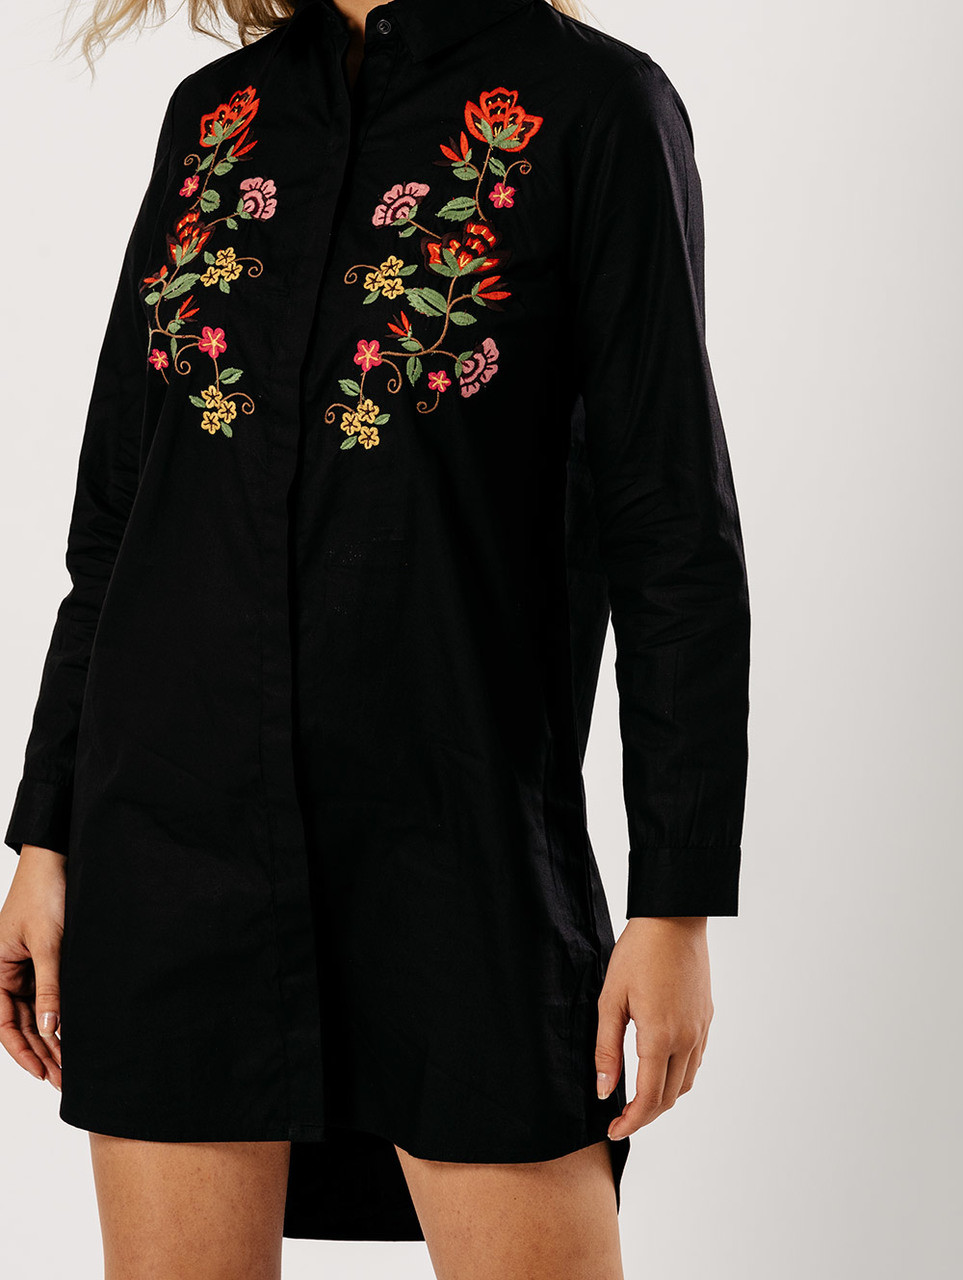 Black Embroidered Shirt Dress